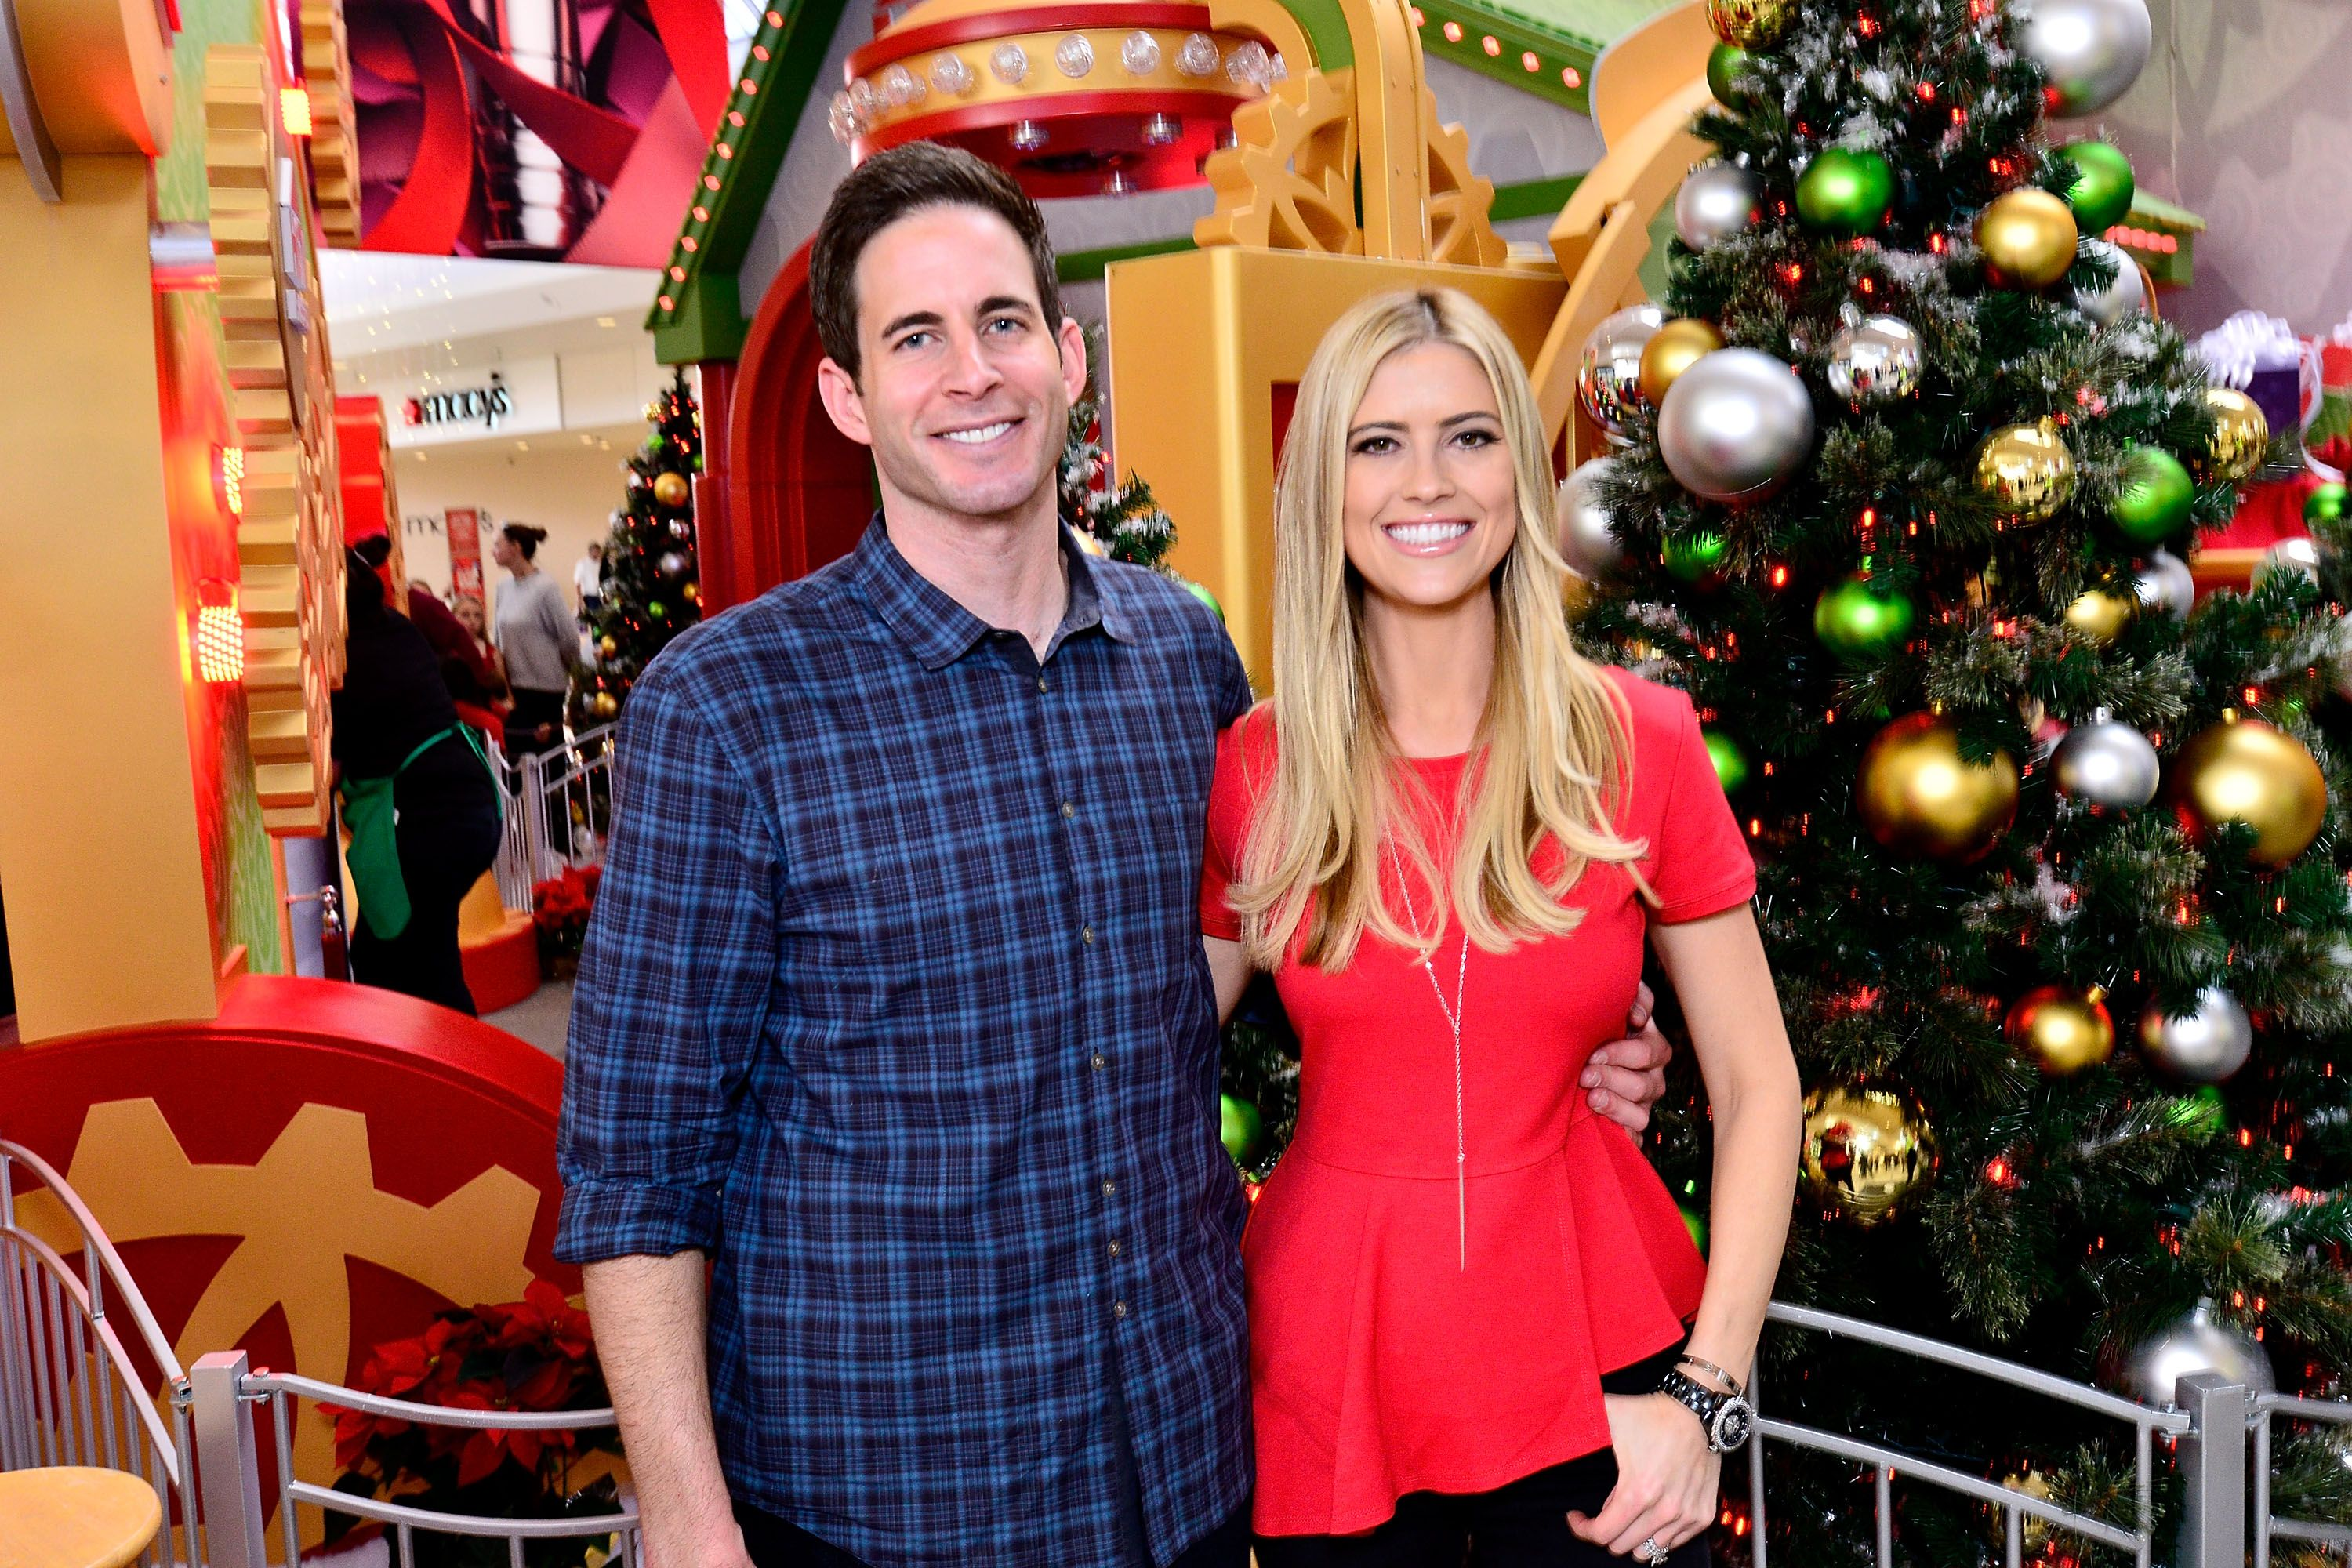 Tarek and Christina El Moussa, hosts of HGTV's hit show Flip or Flop, visited the HGTV Santa HQ at Lakewood Center on December 13, 2014 in Lakewood, California. | Source: Getty Images